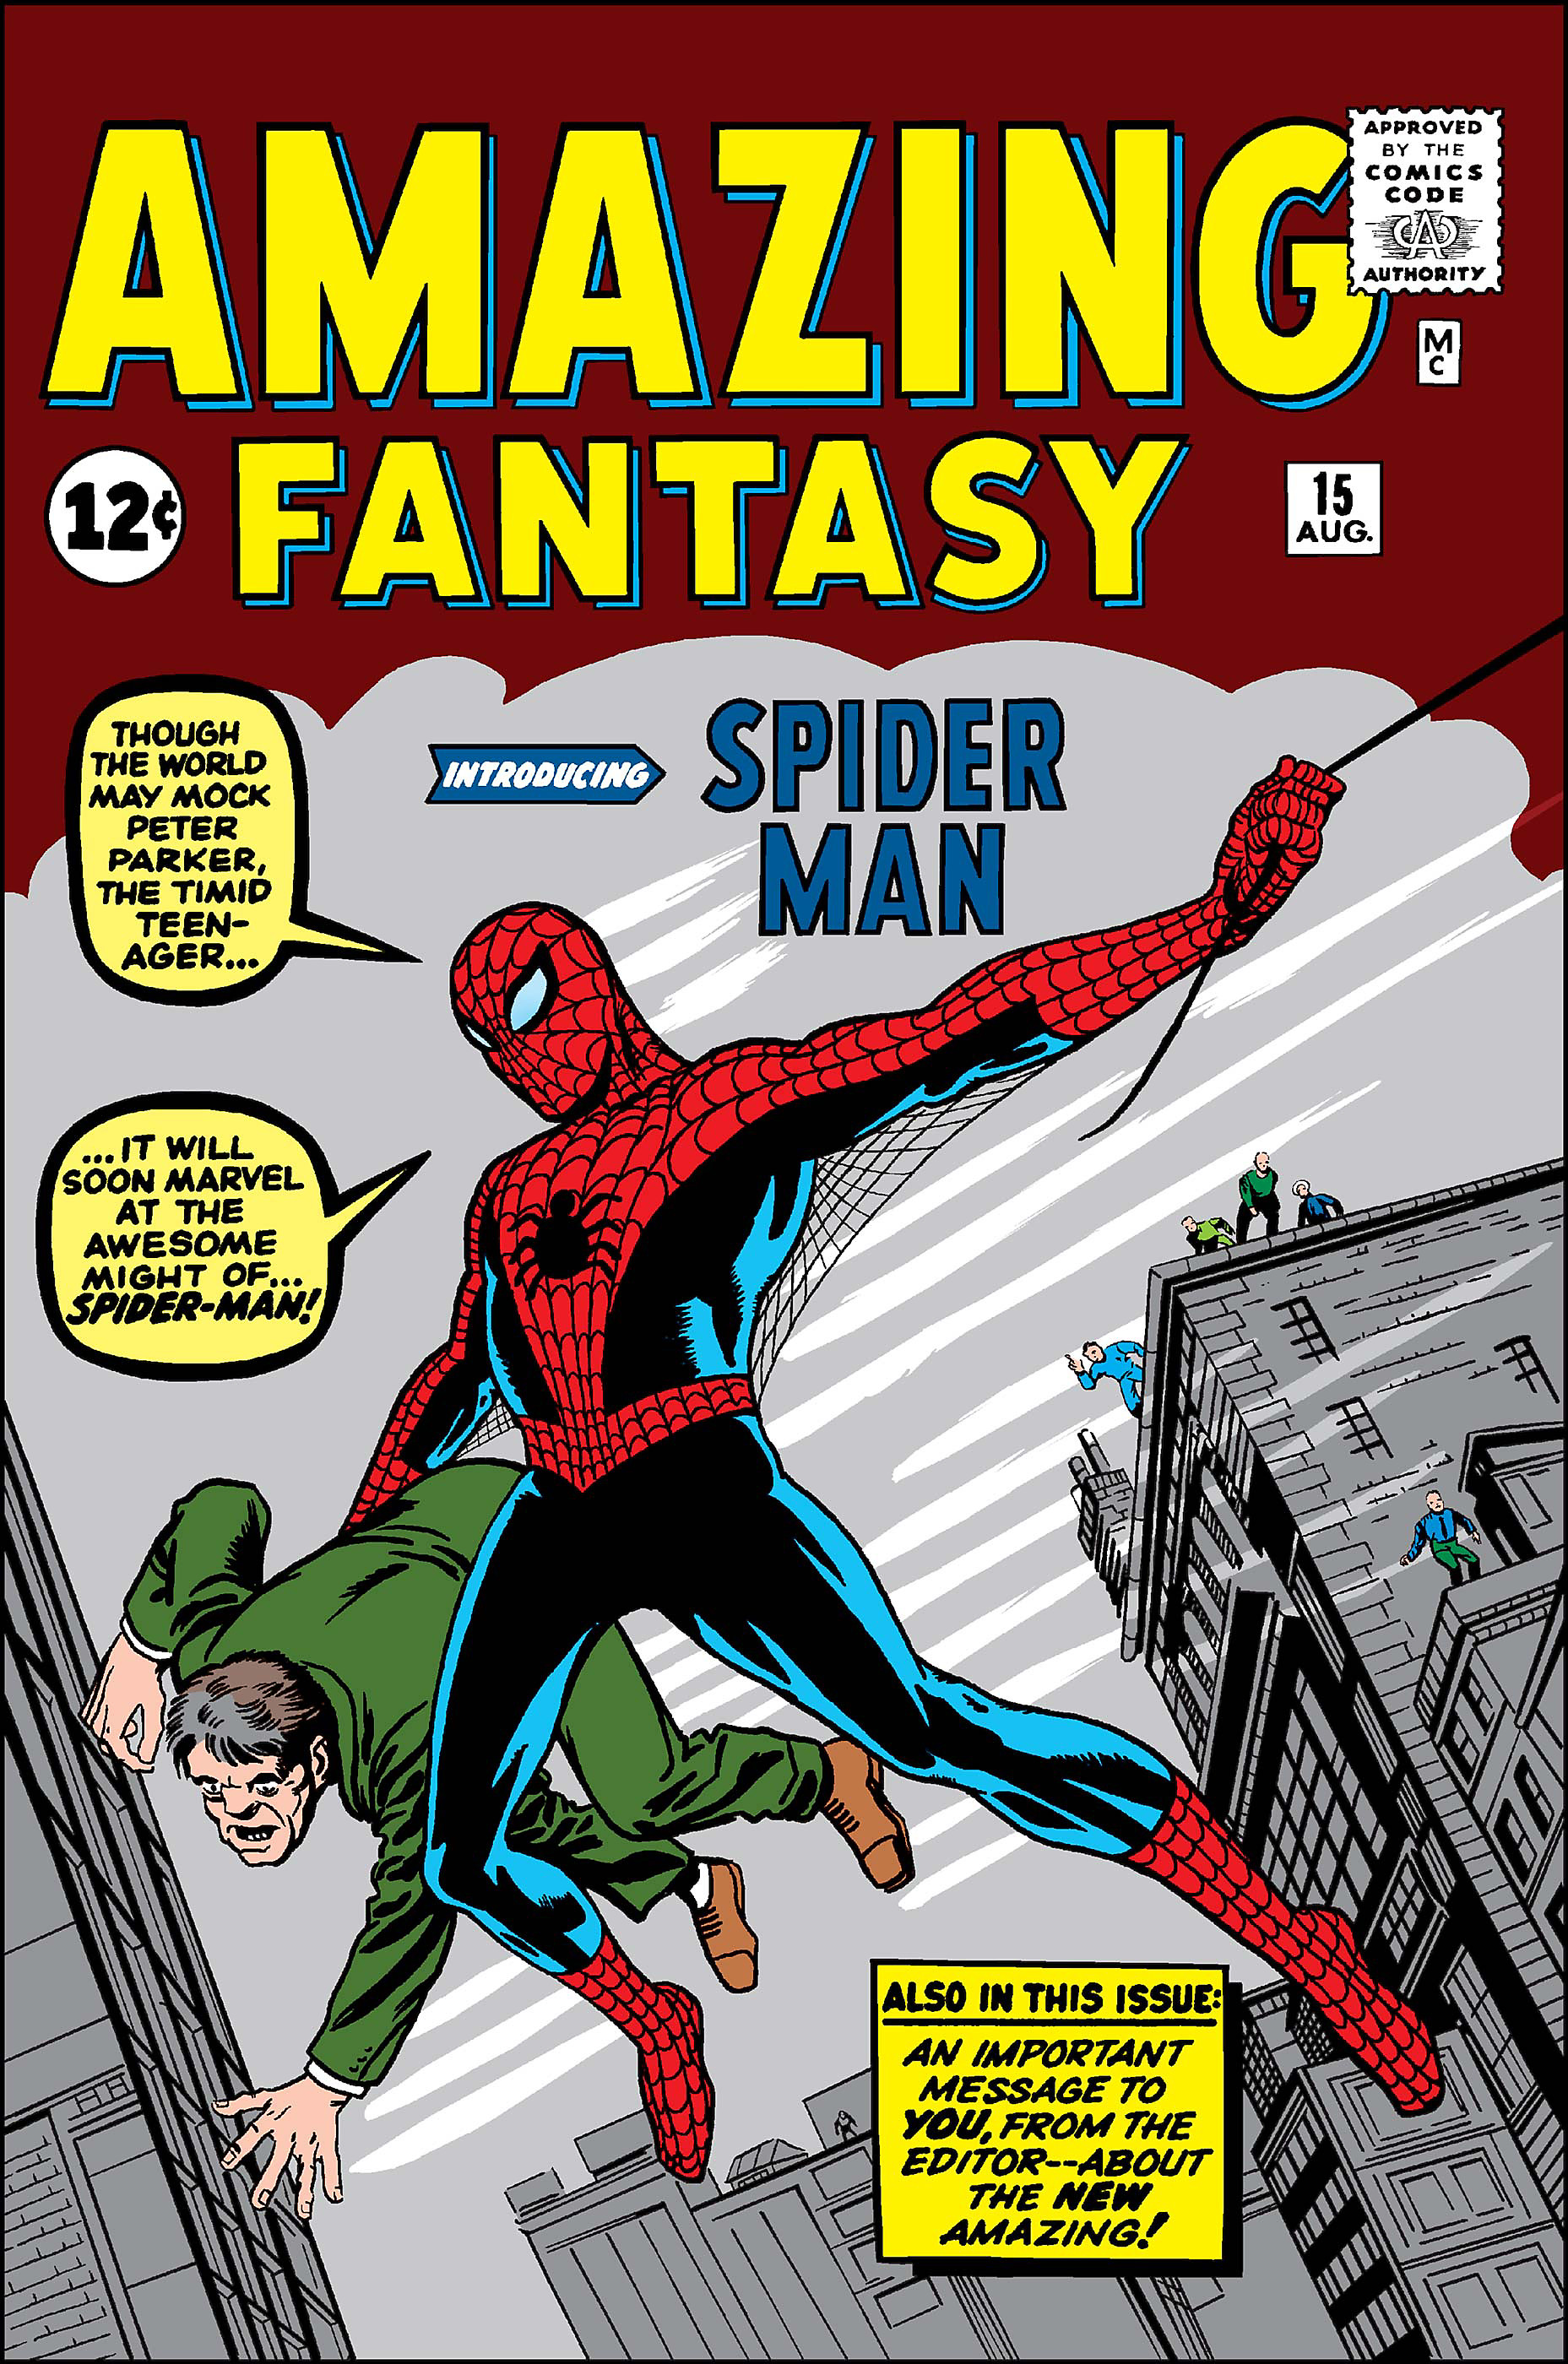 Spider-Man Comic - Amazing Fantasy #15 Cover